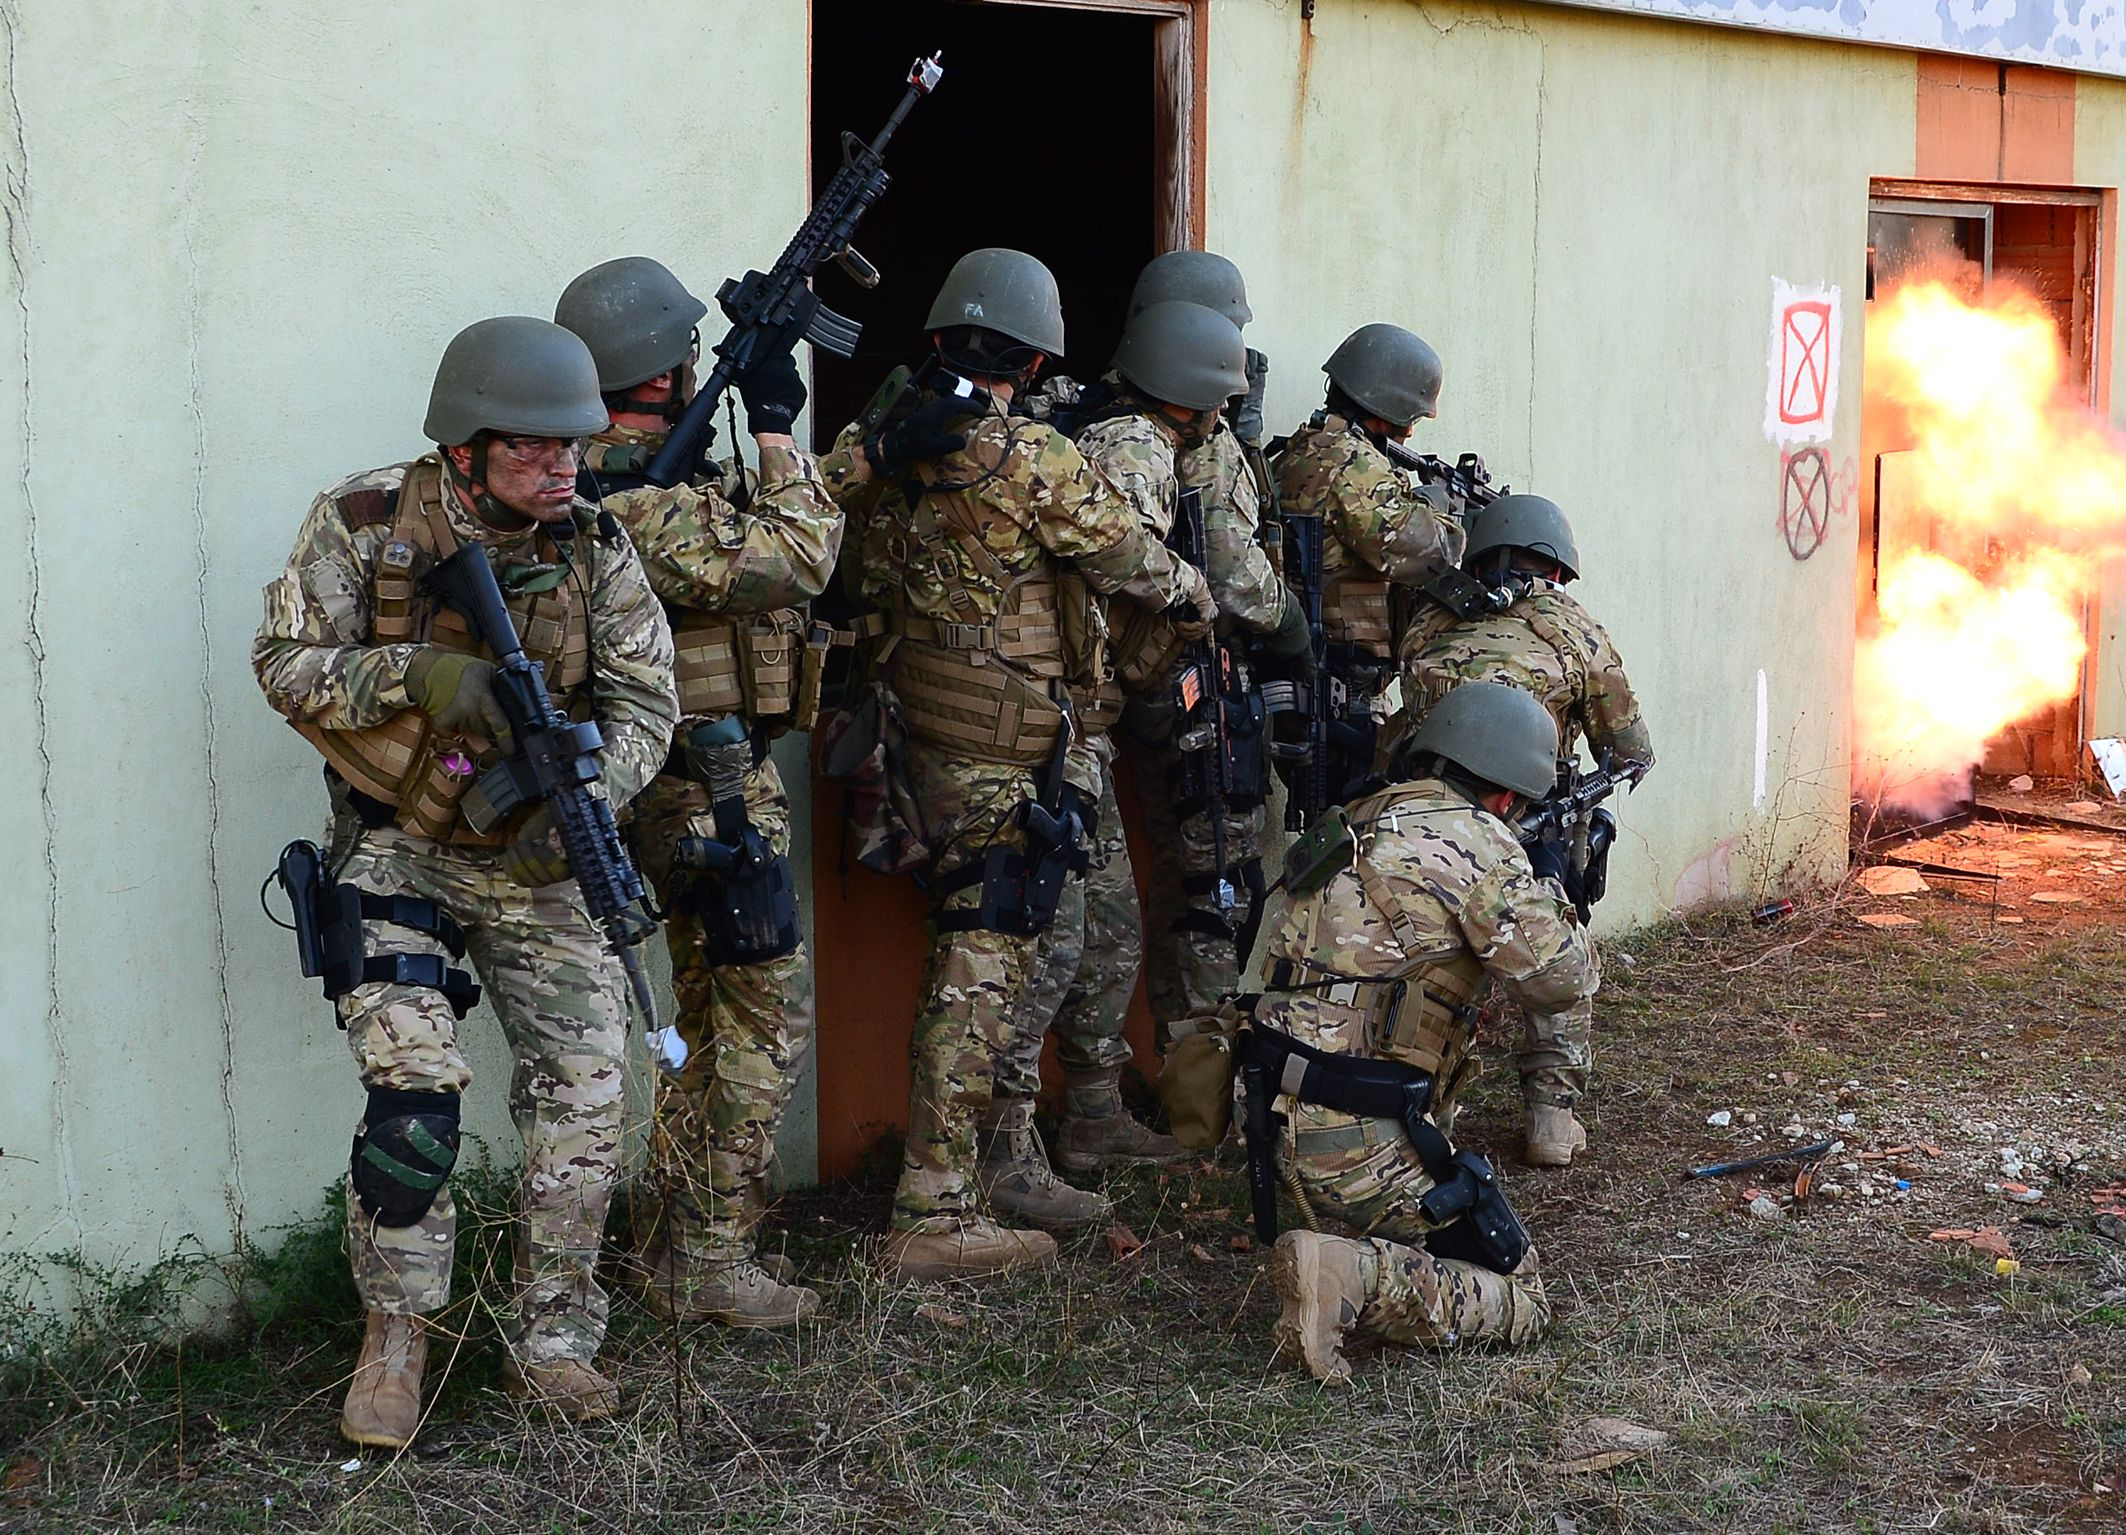 Turkish Navy special operations forces operators [2126 x